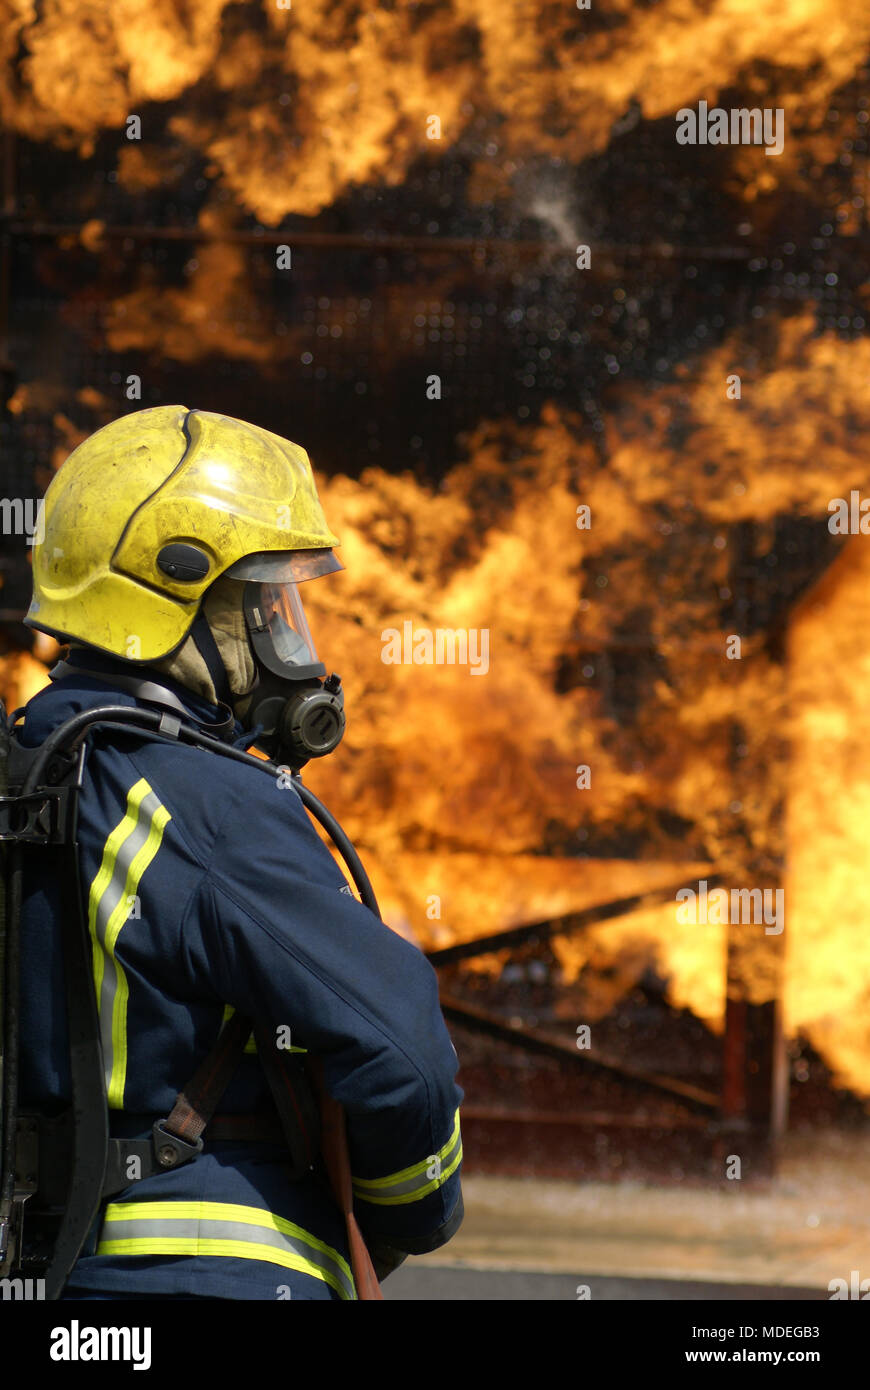 firefighting, aircraft crash, fire and flames - Stock Image